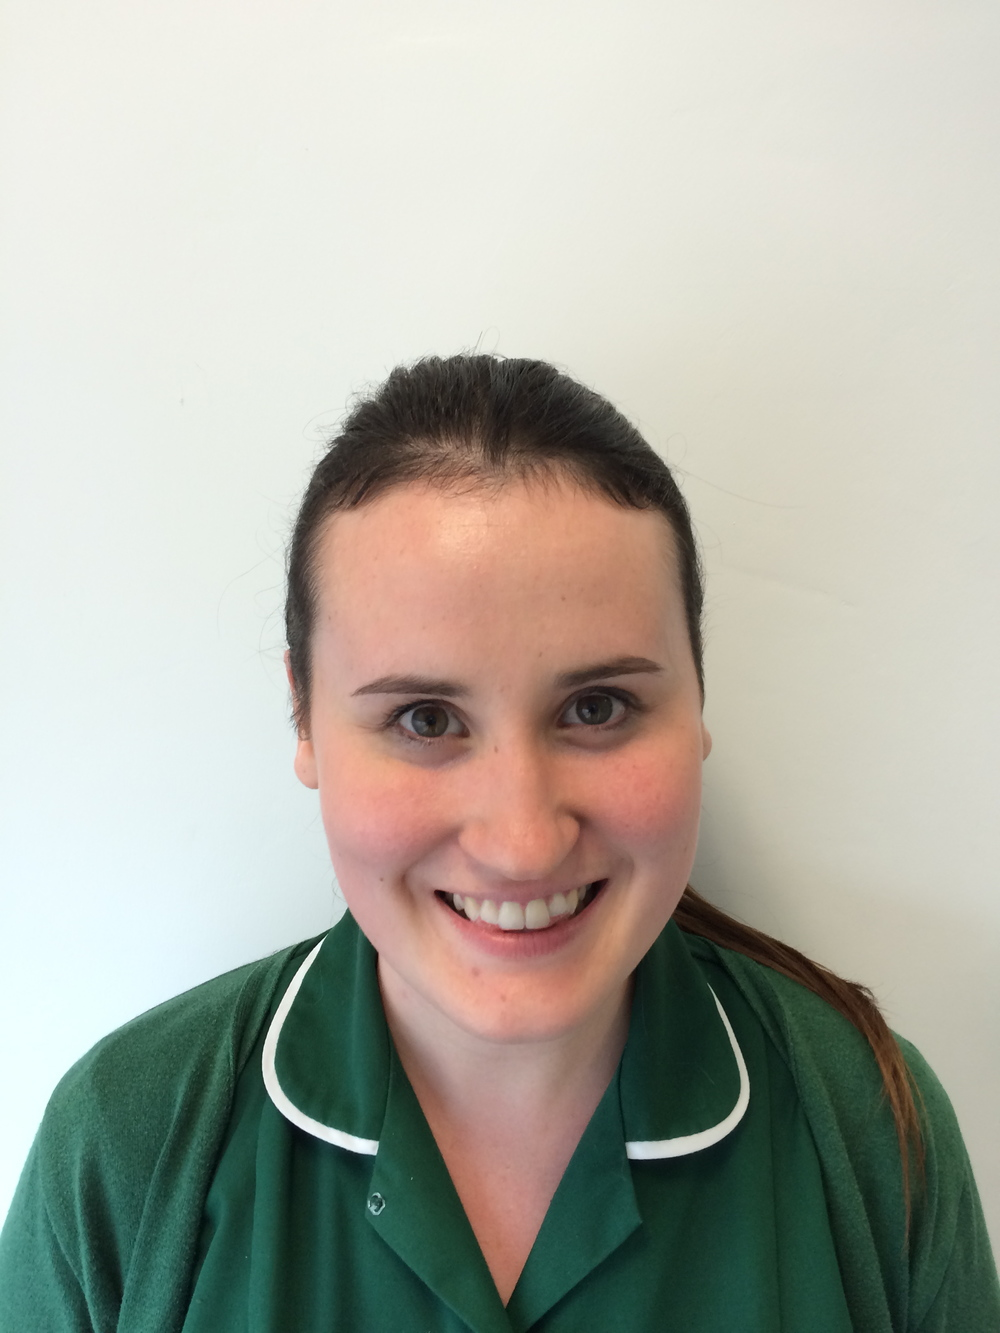 EMMA MANNAH  Veterinary Nurse RVN  Emma has worked in small animal practice since 2009 and qualified in 2012. She has a particular interest in animal behaviour. She has 2 cats and a baby daughter, Lillie.